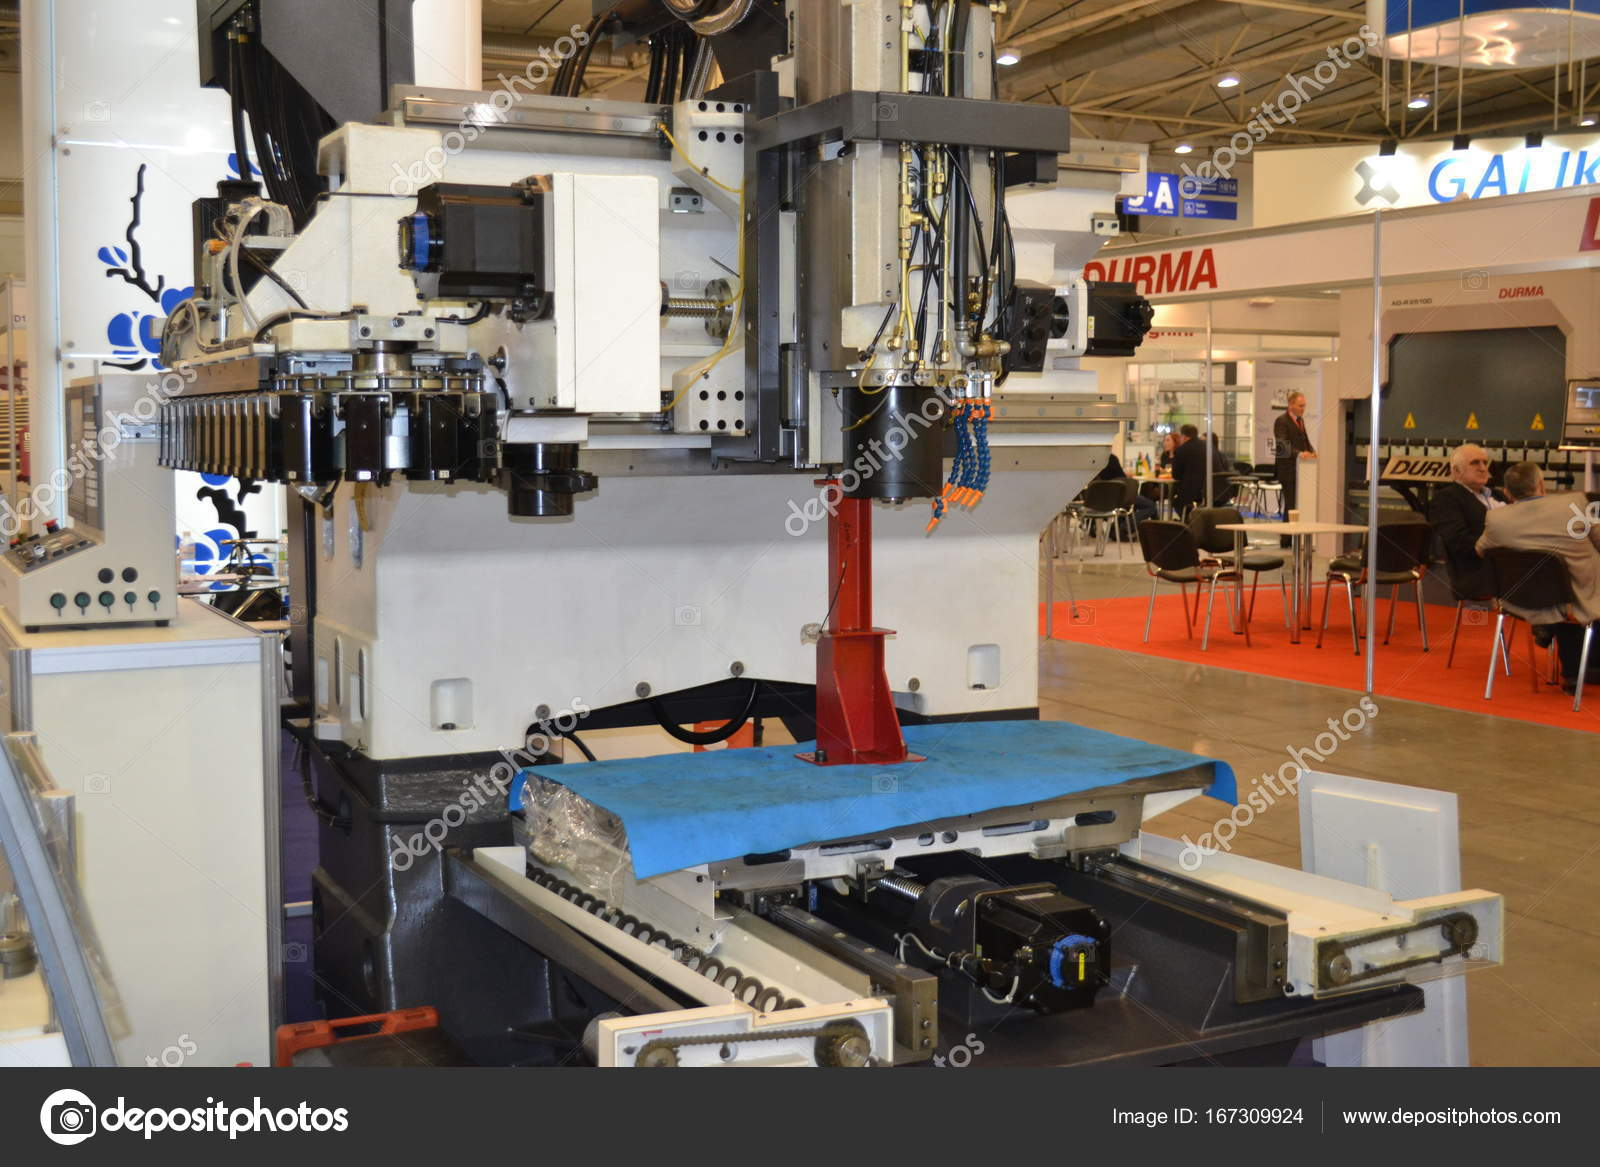 Industrial machinery, Industrial equipment, Industrial facilities and  machine tools, machinery lathes – Stock Editorial Photo © Marina1408  #167309924